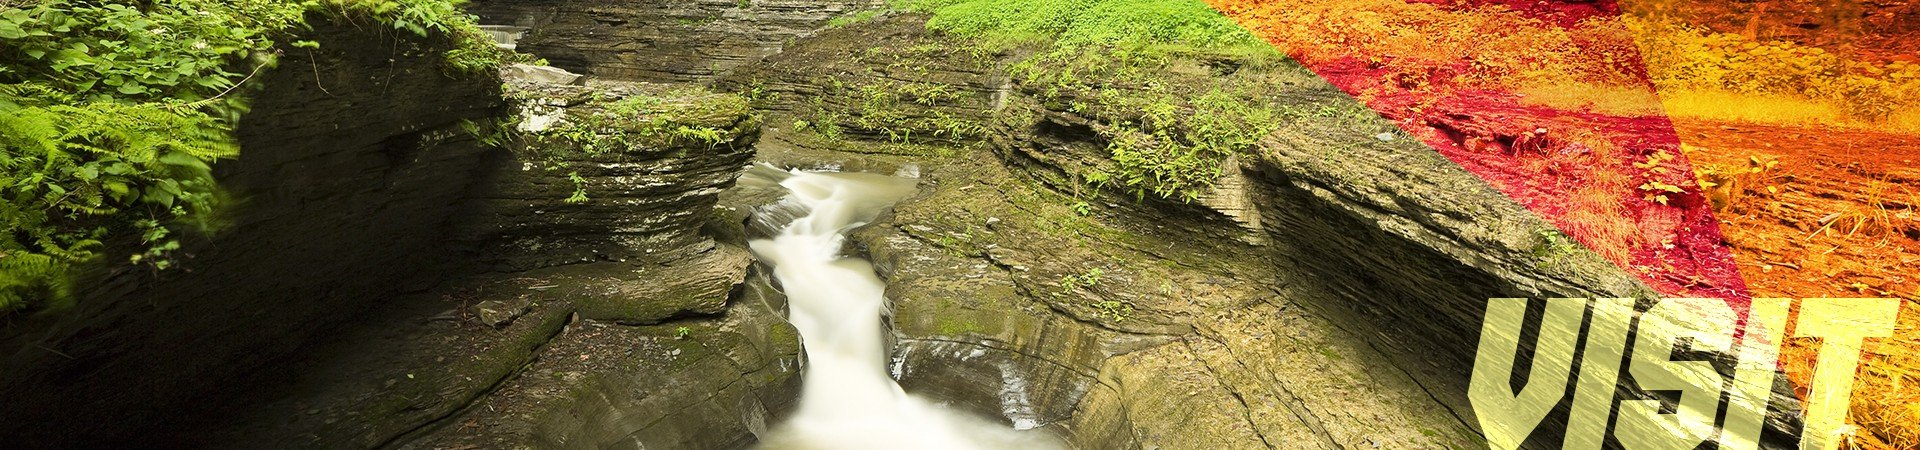 Visit - Watkins Glen Gorge in New York